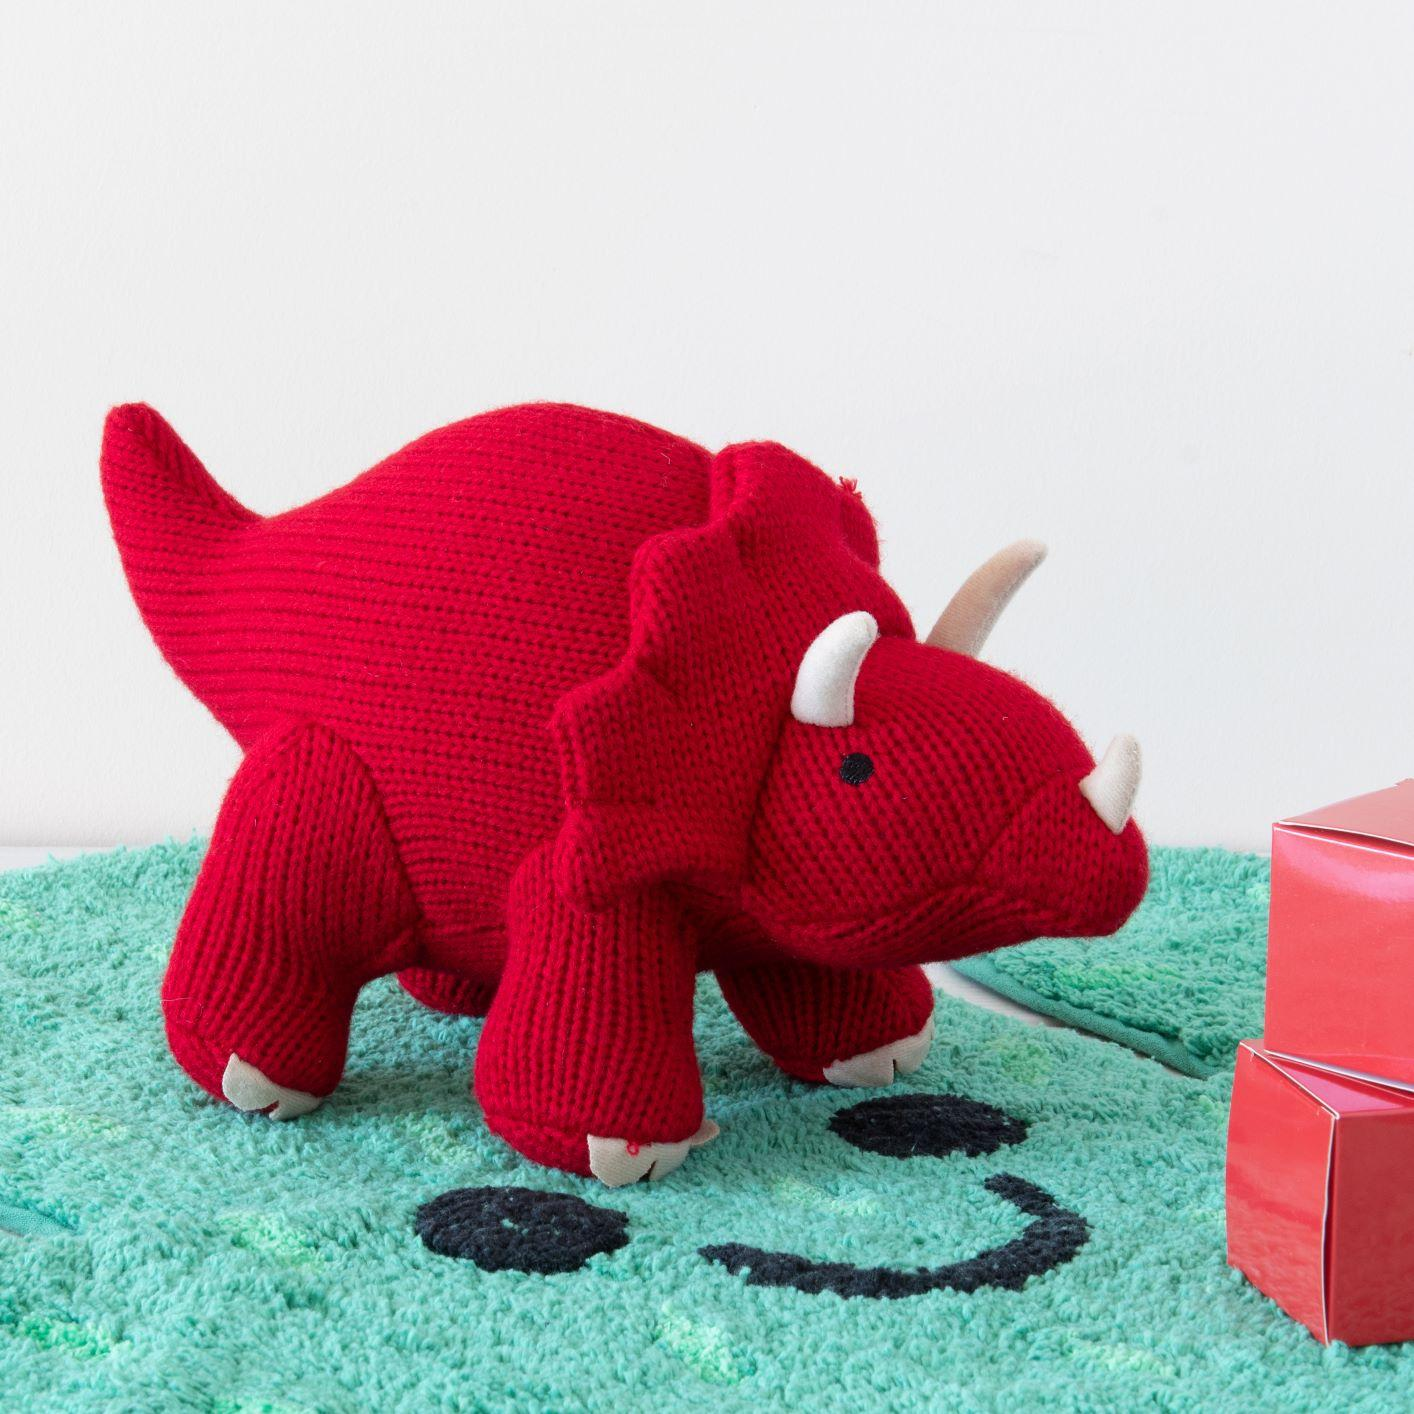 KNITTED LARGE RED TRICERATOPS DINOSAUR SOFT TOY